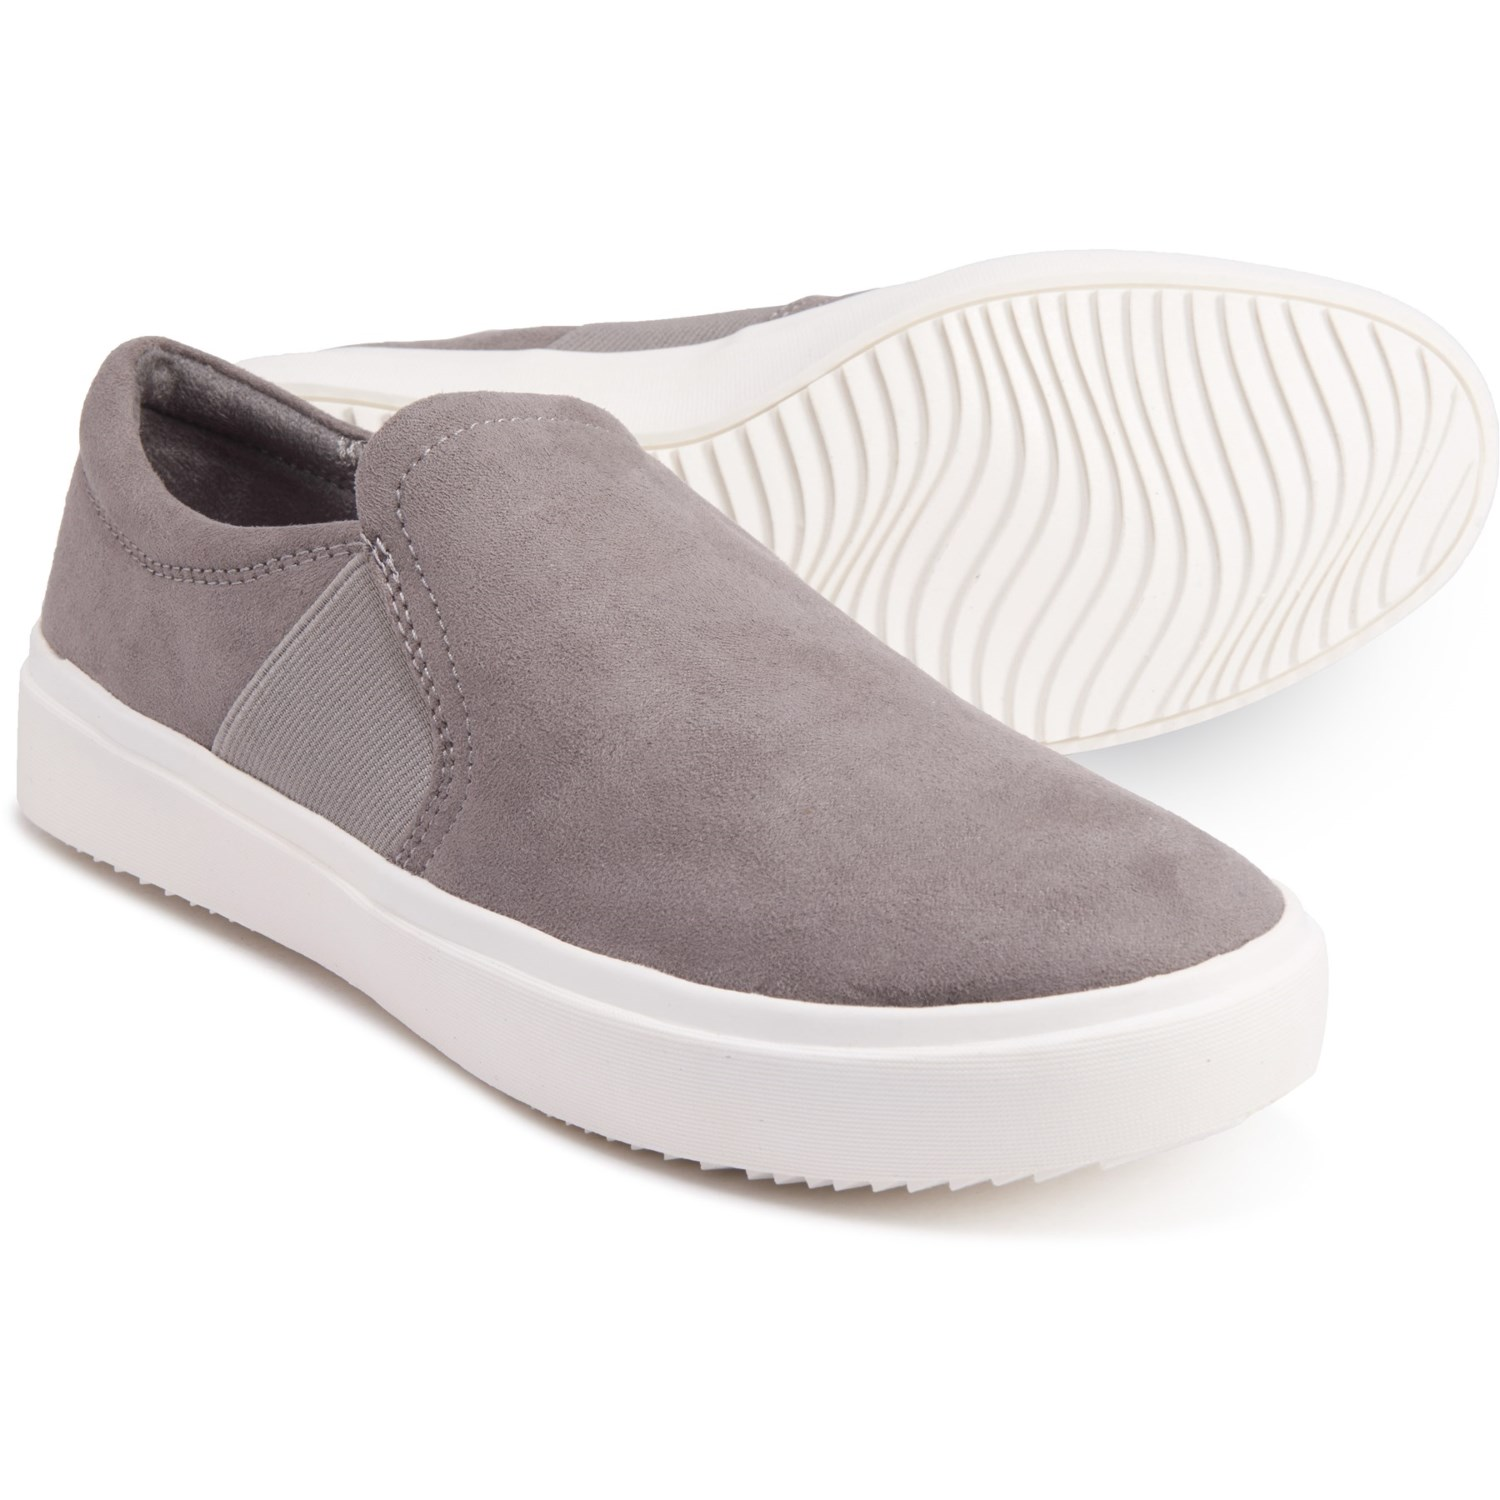 Dr. Scholl's Slip-On Sneakers (For